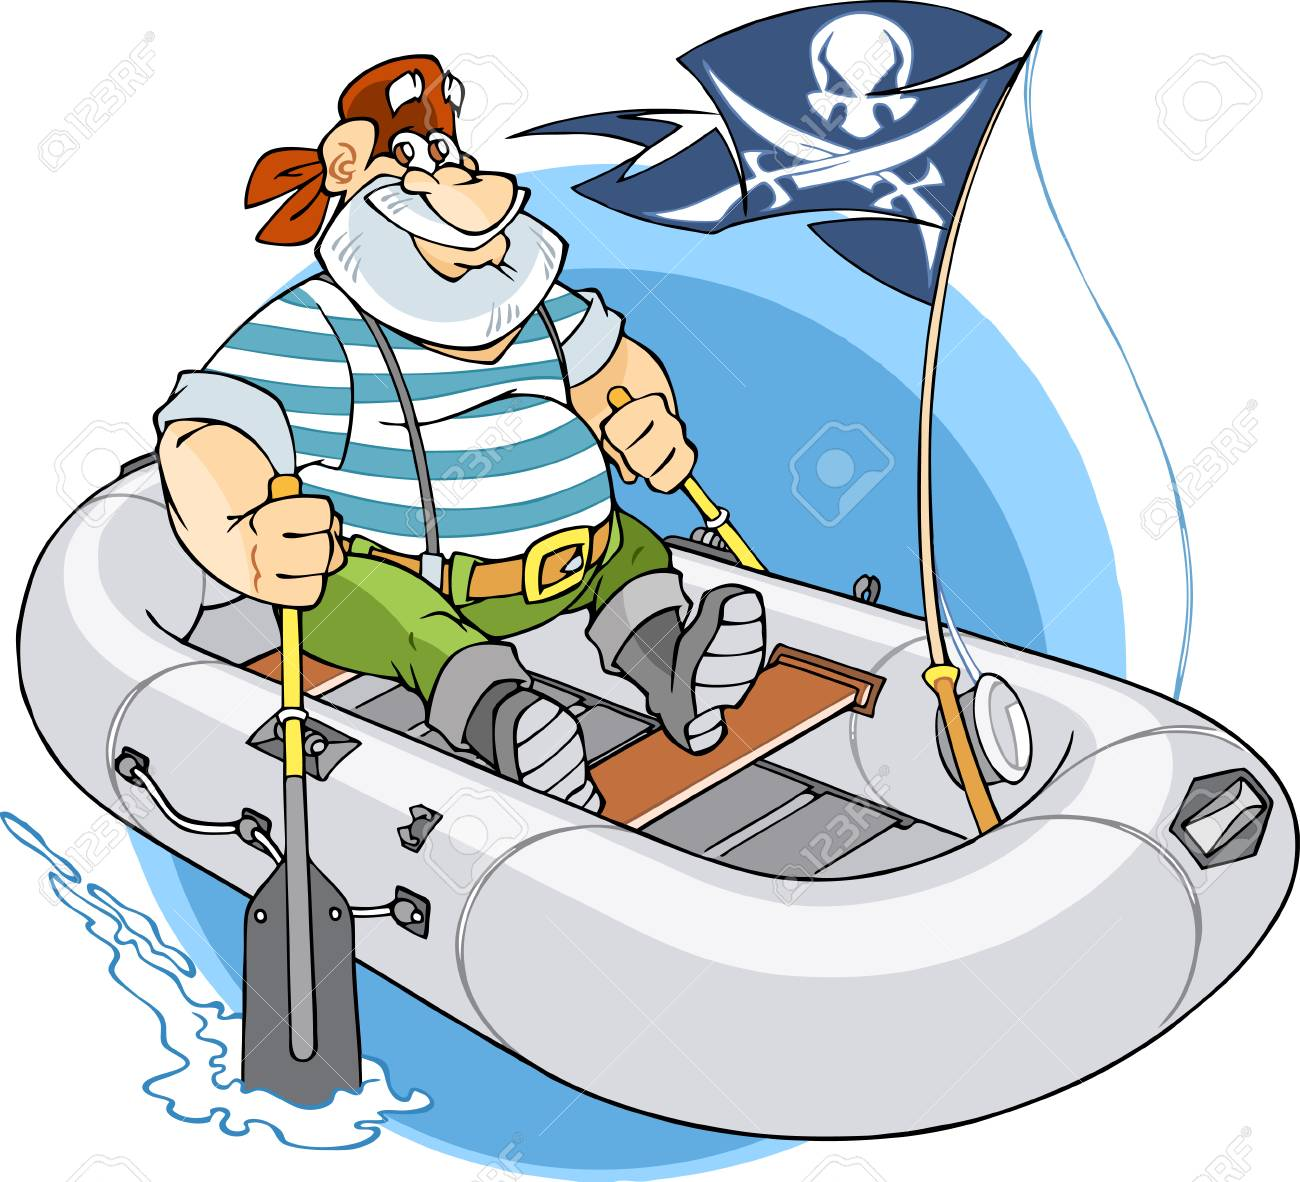 Man floats in inflatable boat.Inside the boat a pirate flag and man is looking for adventure. Stock Vector - 8701299